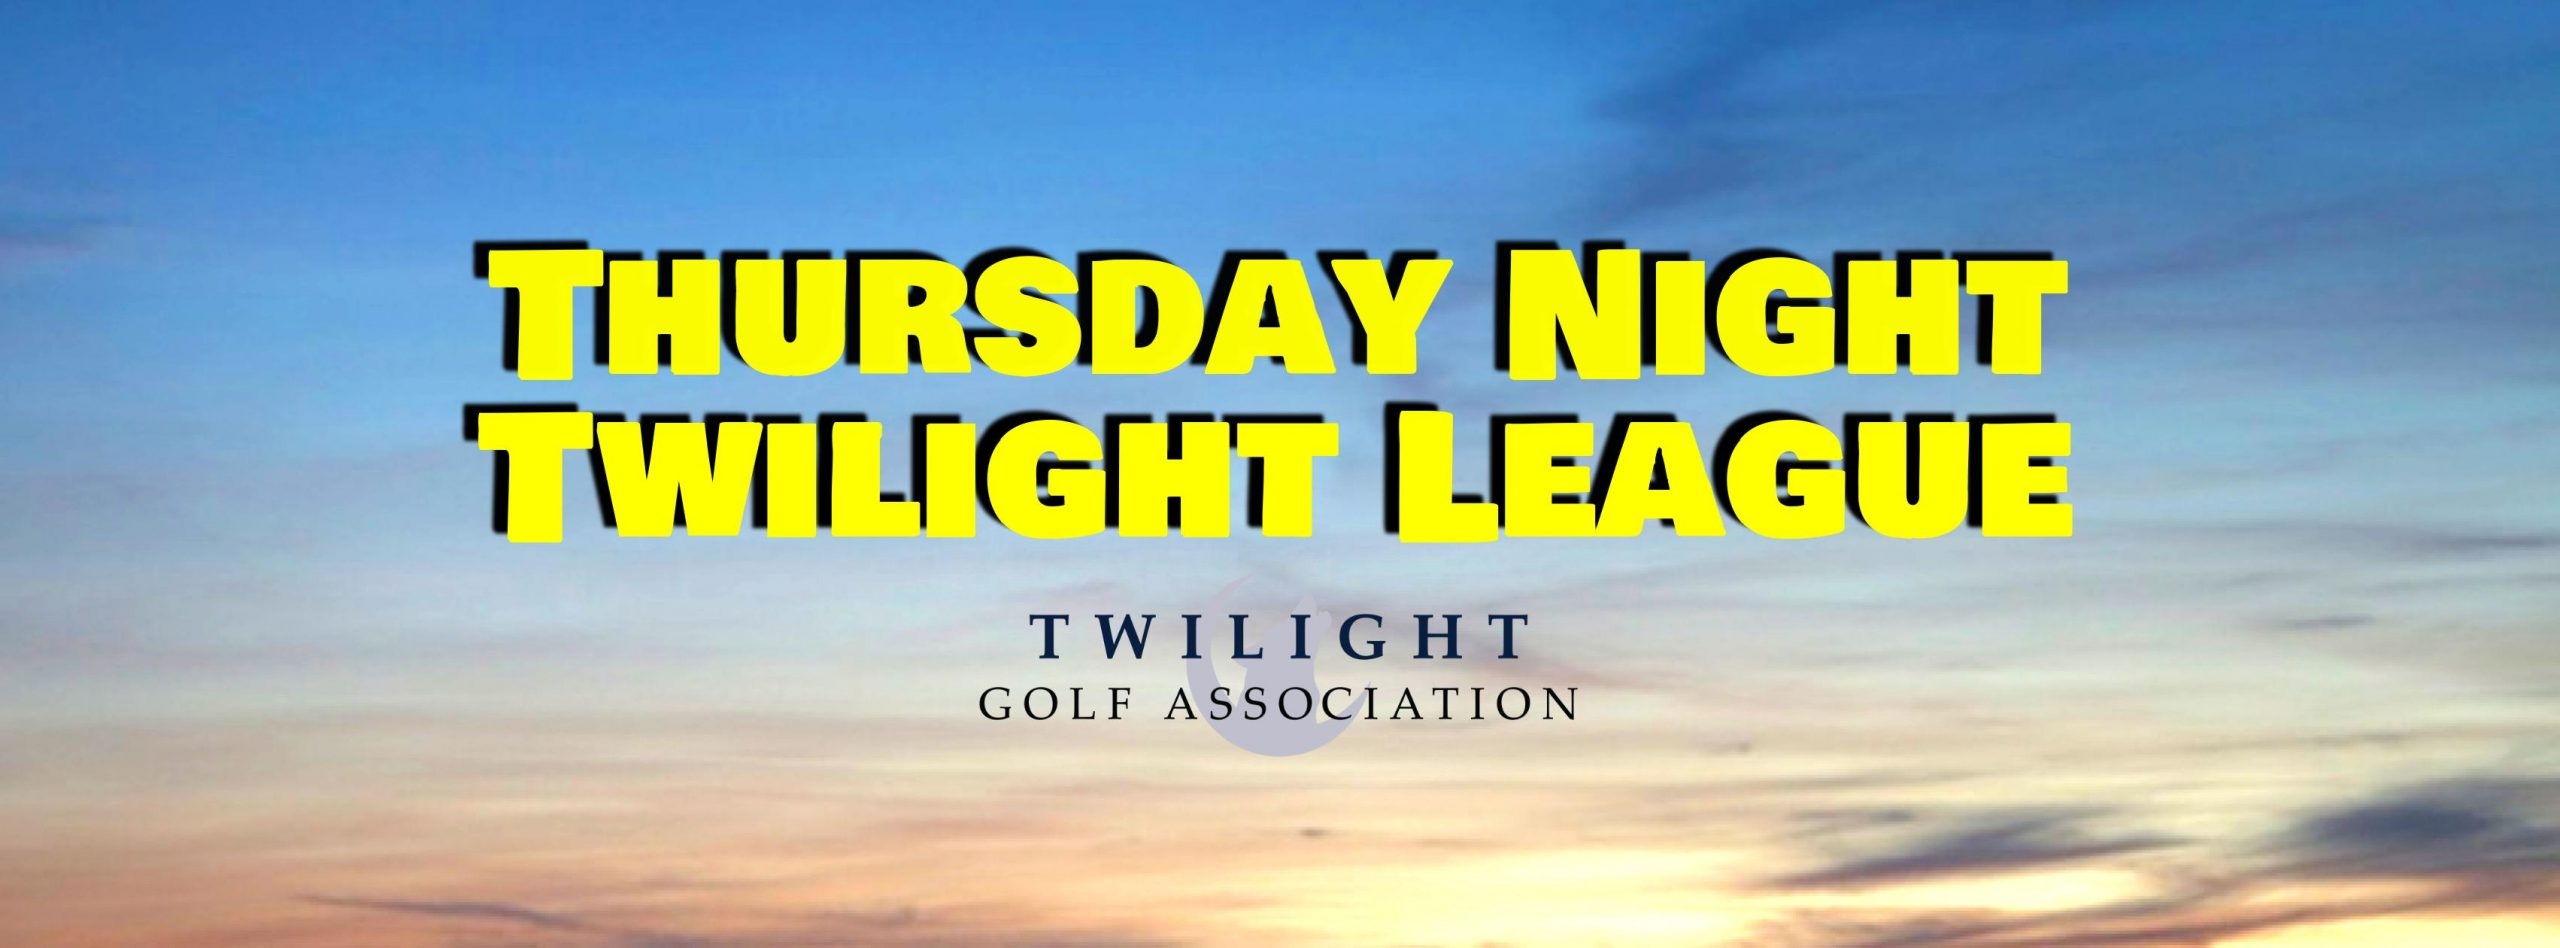 Thursday Night Twilight League at Rancocas Golf Club